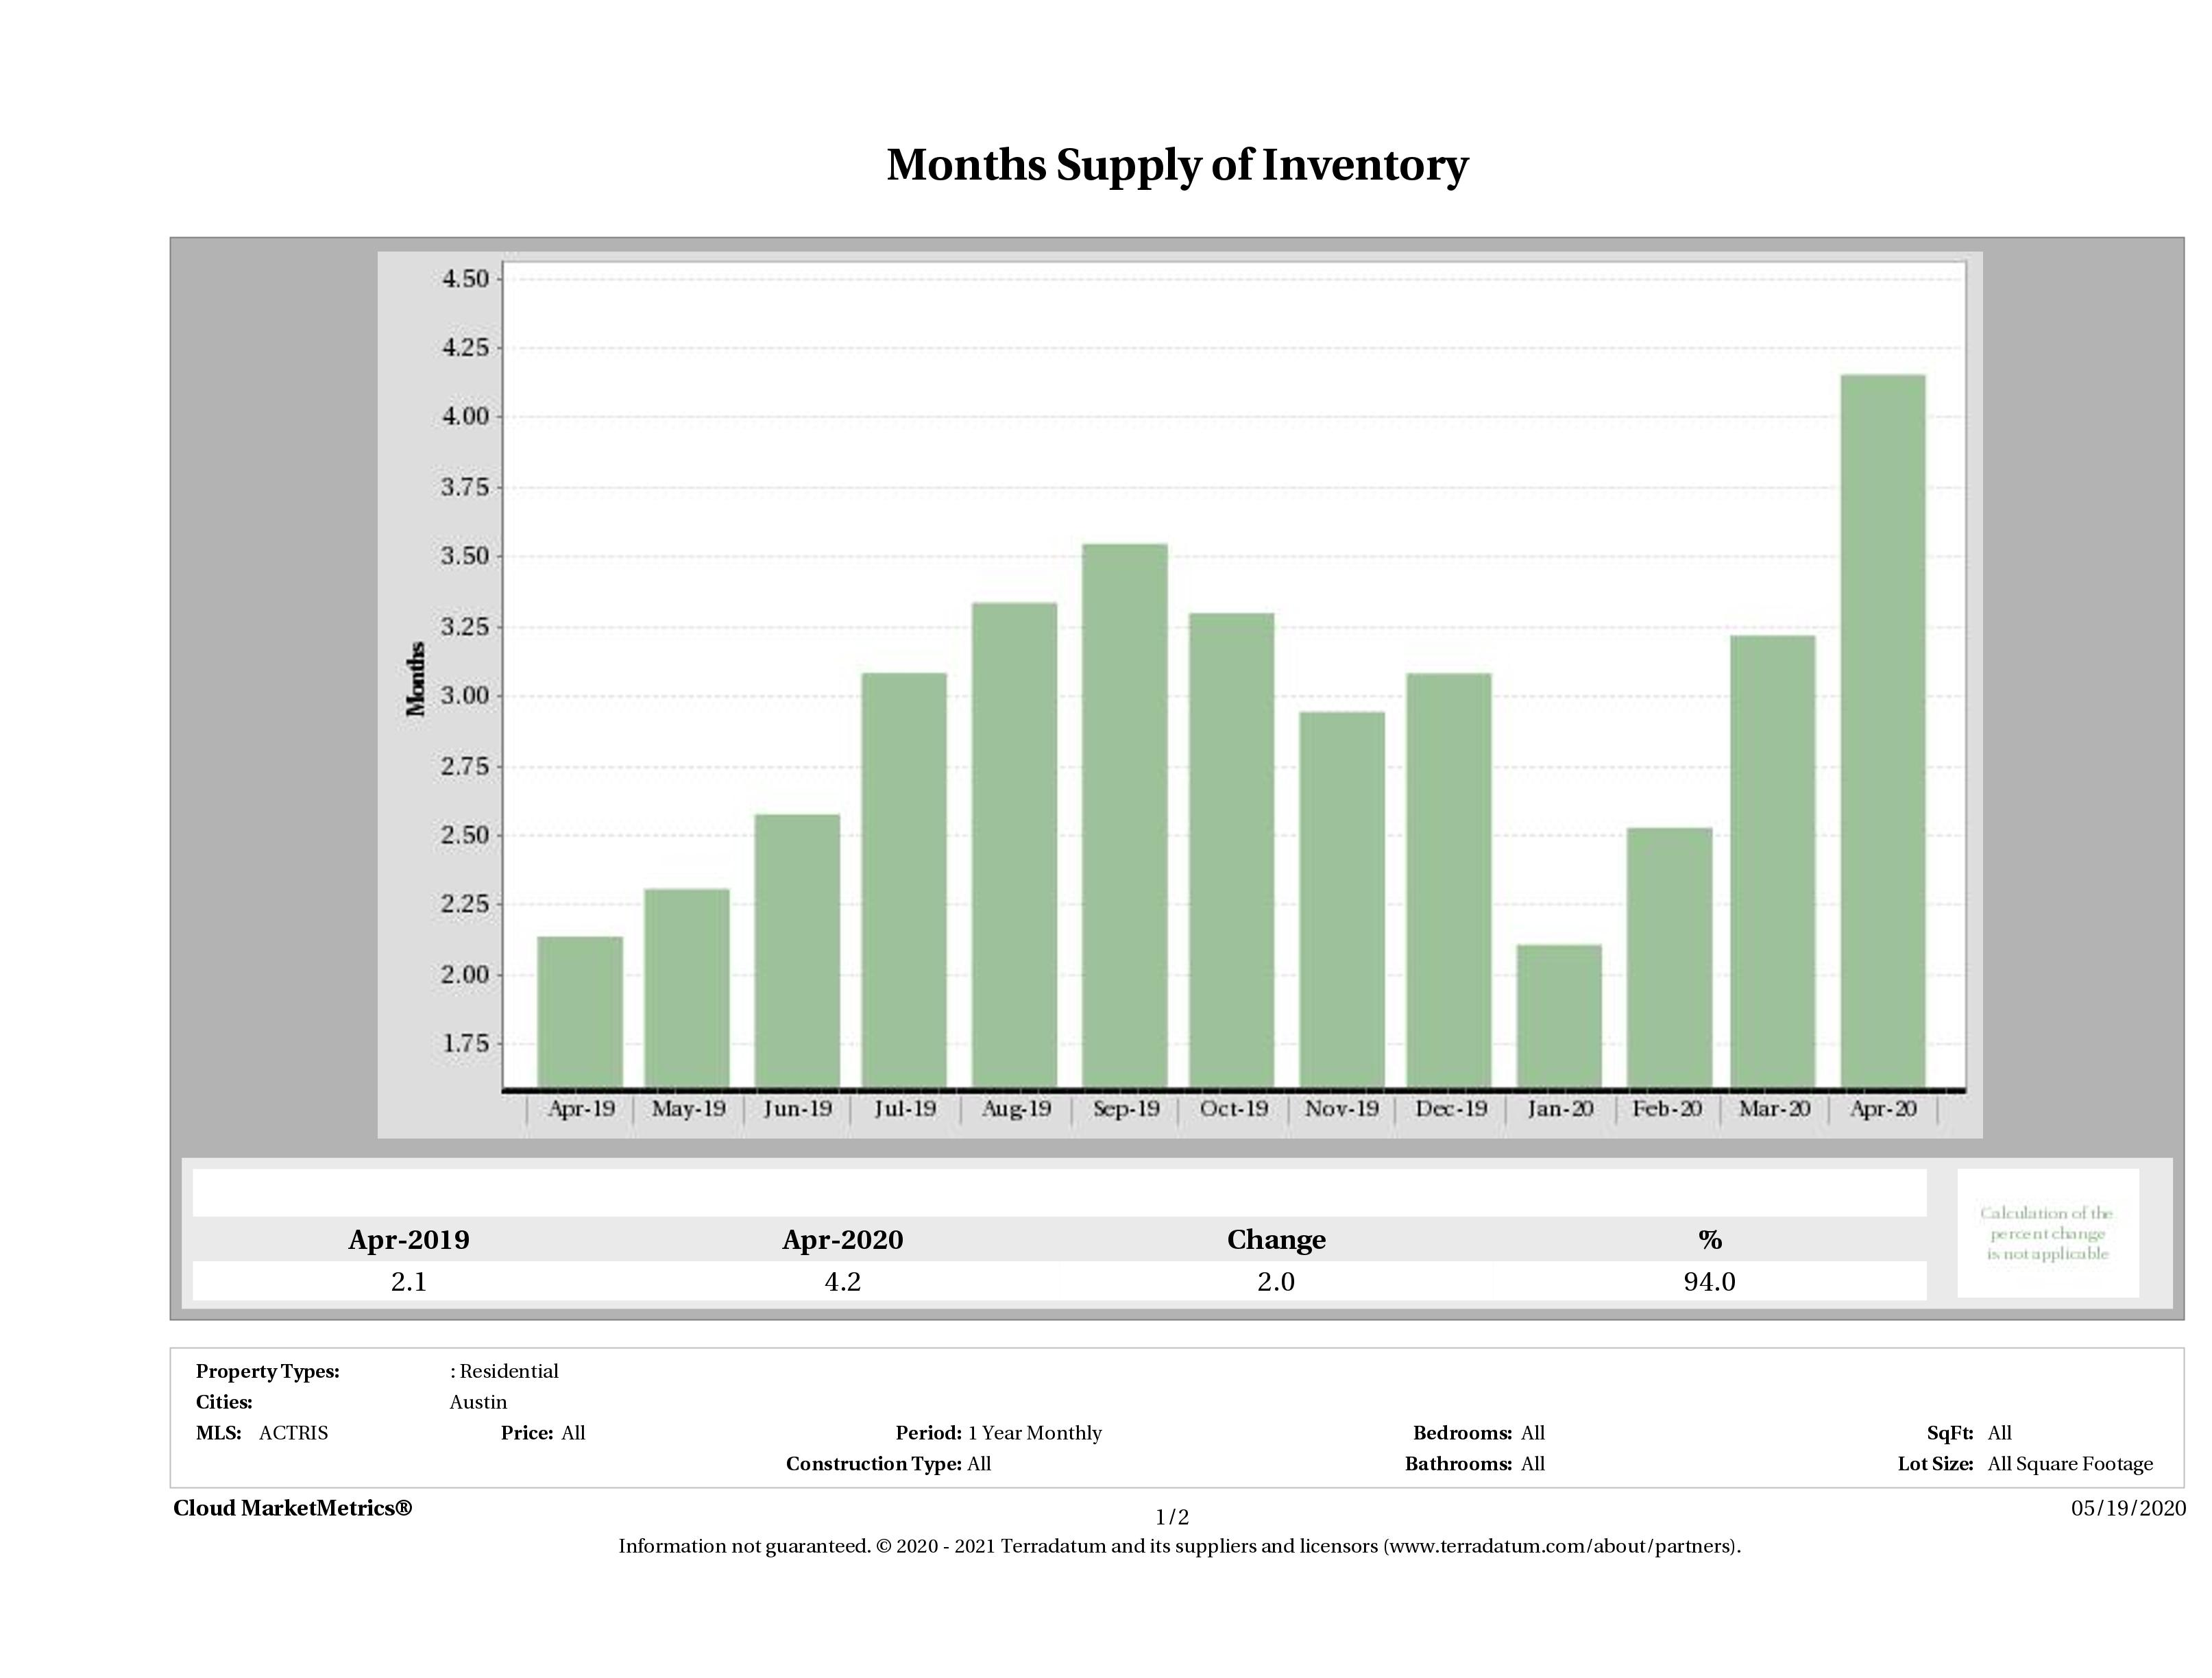 months supply of condo inventory April 2020